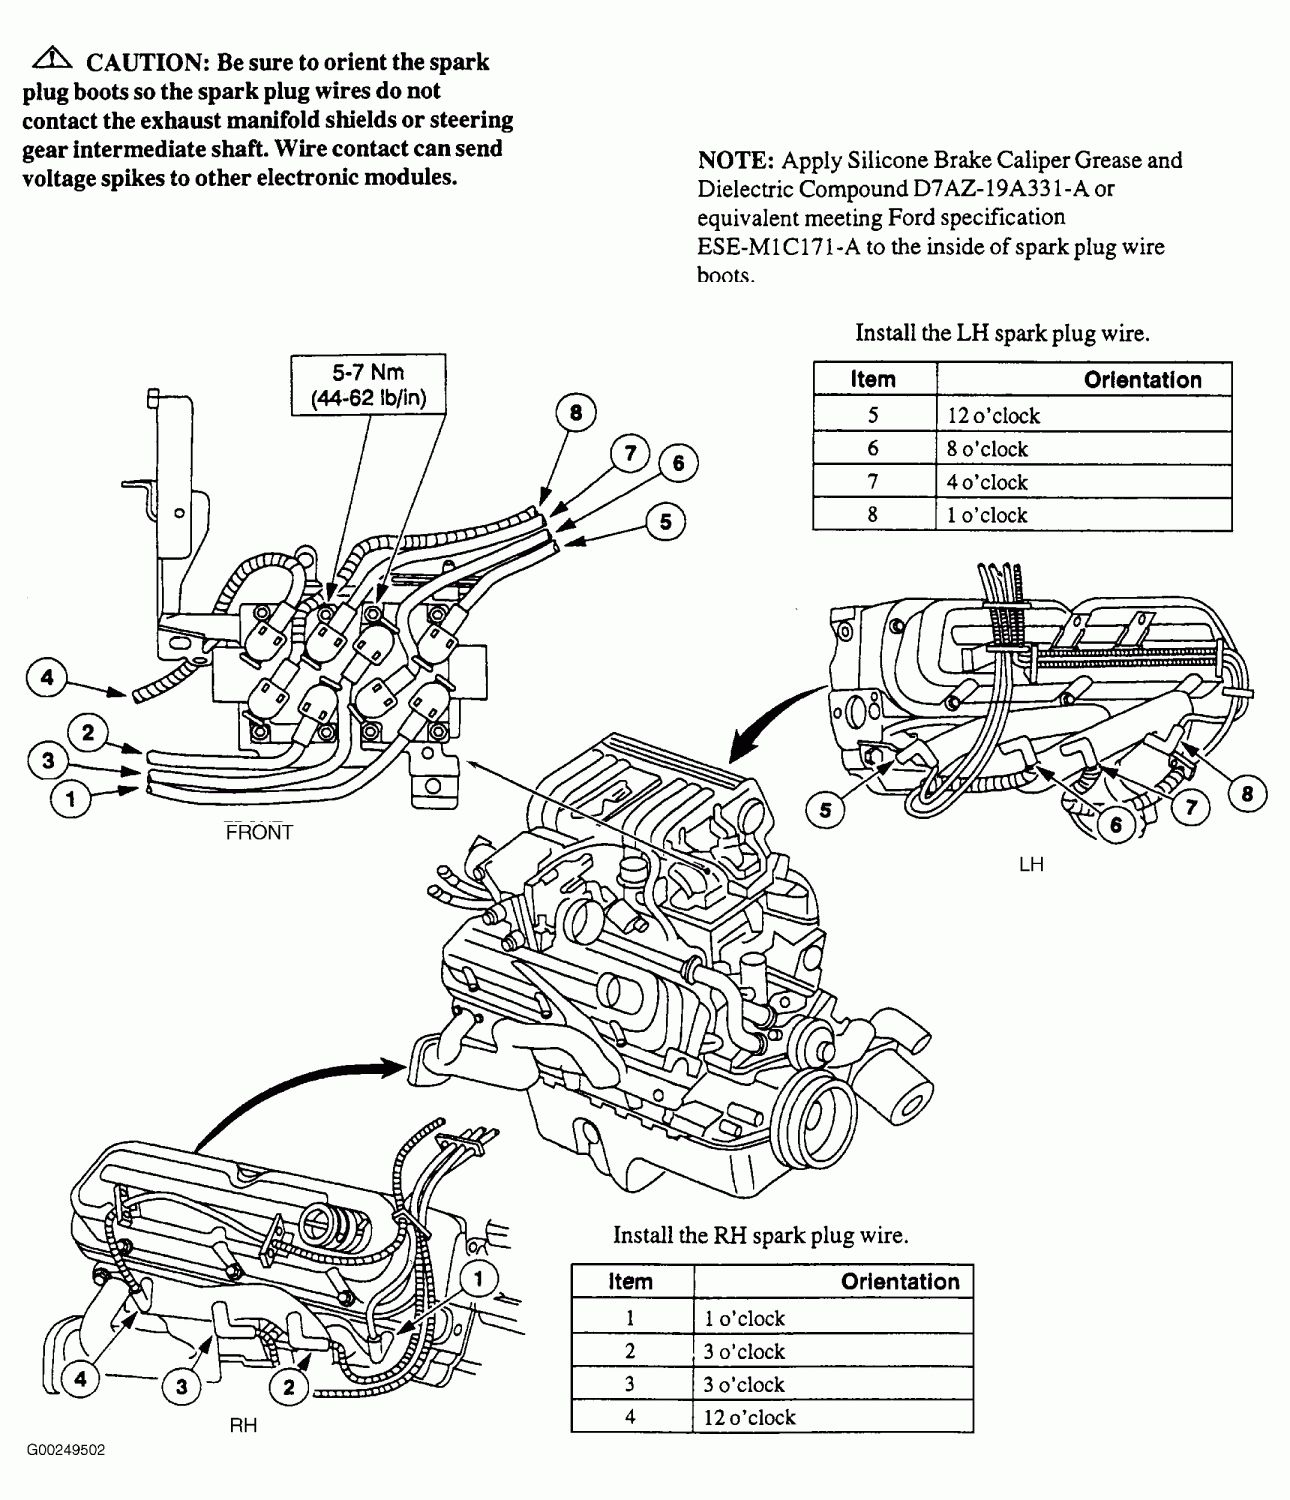 1996 ford explorer transmission diagram | steam-timetab wiring diagram ran  - steam-timetab.rolltec-automotive.eu  rolltec-automotive.eu